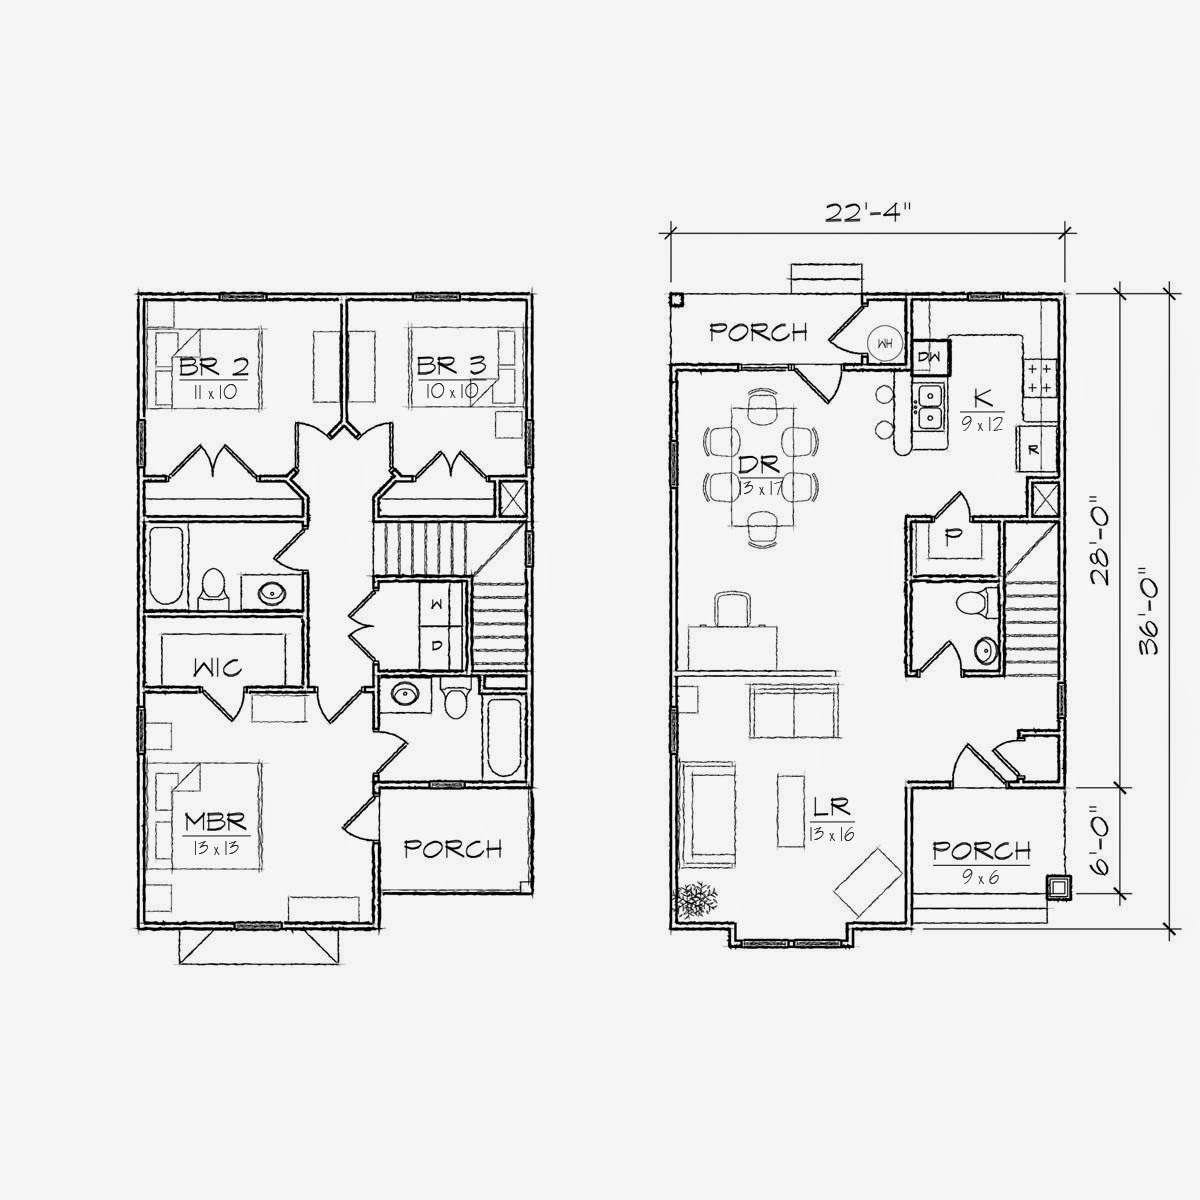 Doneraile Court 6138 together with Victorian Mansion Floor Plans as well Page in addition 2 Bedroom House Plans additionally Modern Apartment Renovation Bright Design Apartment Singel. on small guest house floor plans